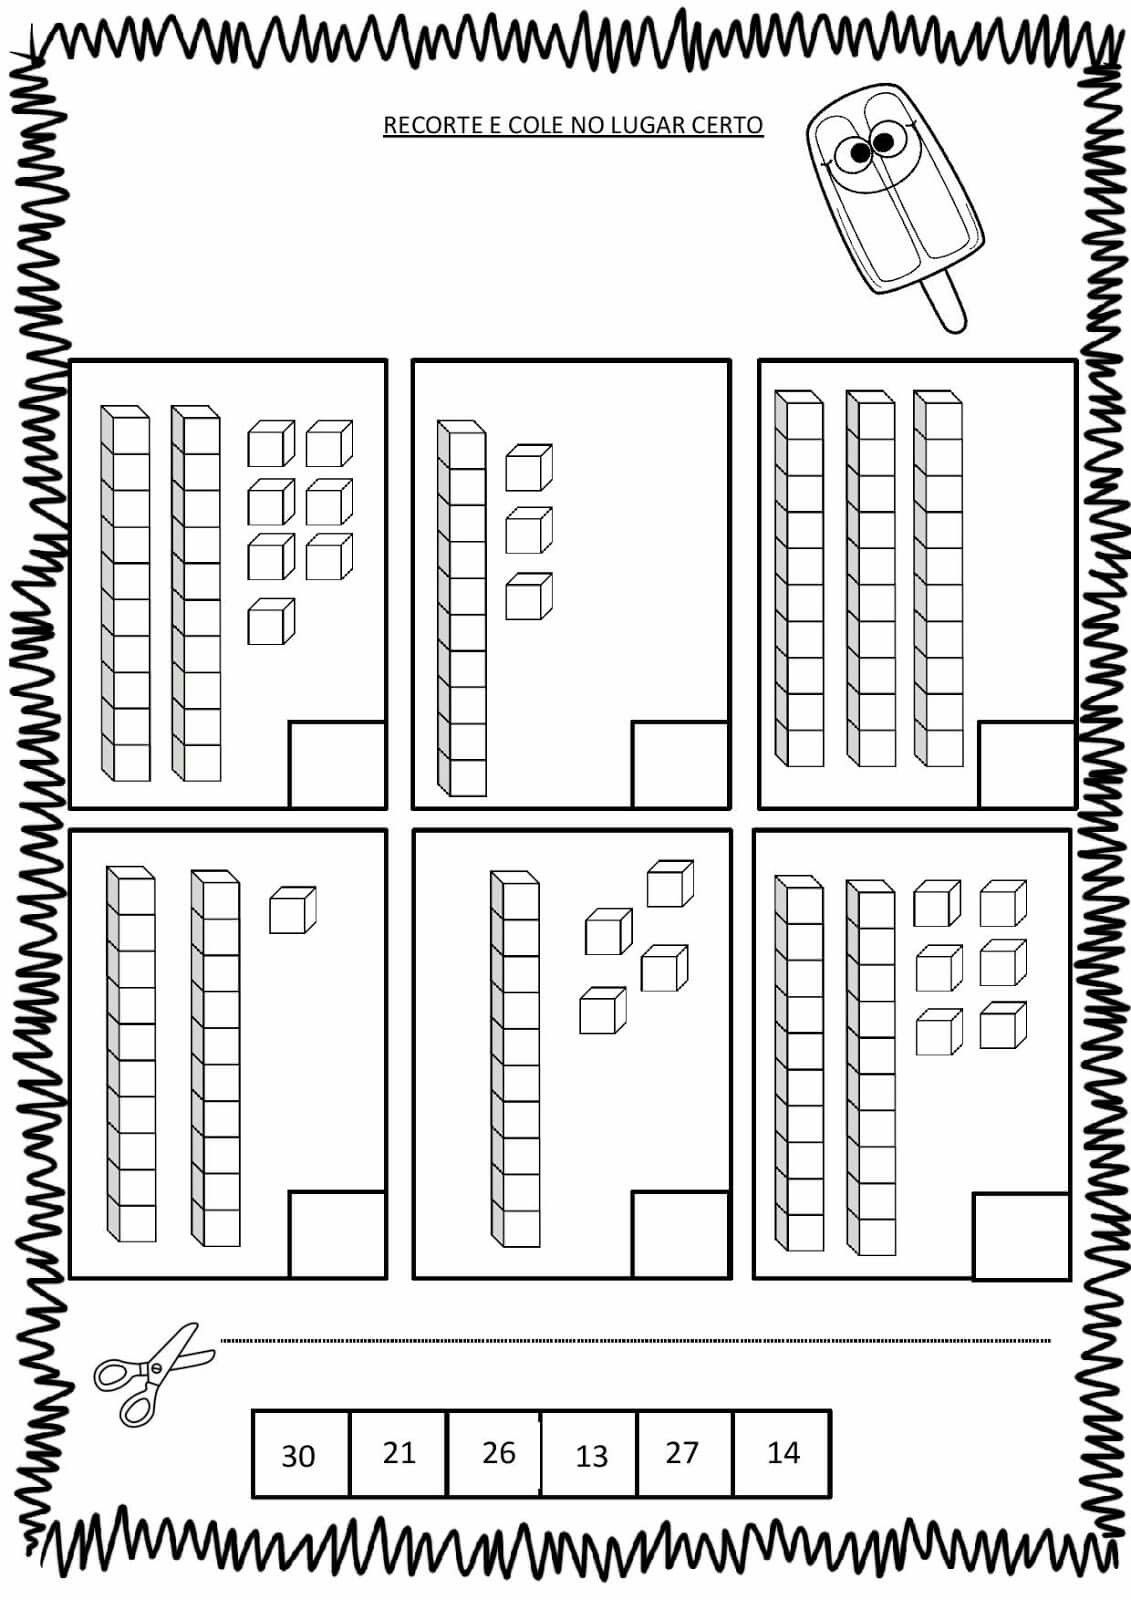 Pin by María del on MATEMÁTICA | Pinterest | Maths, Worksheets and ...